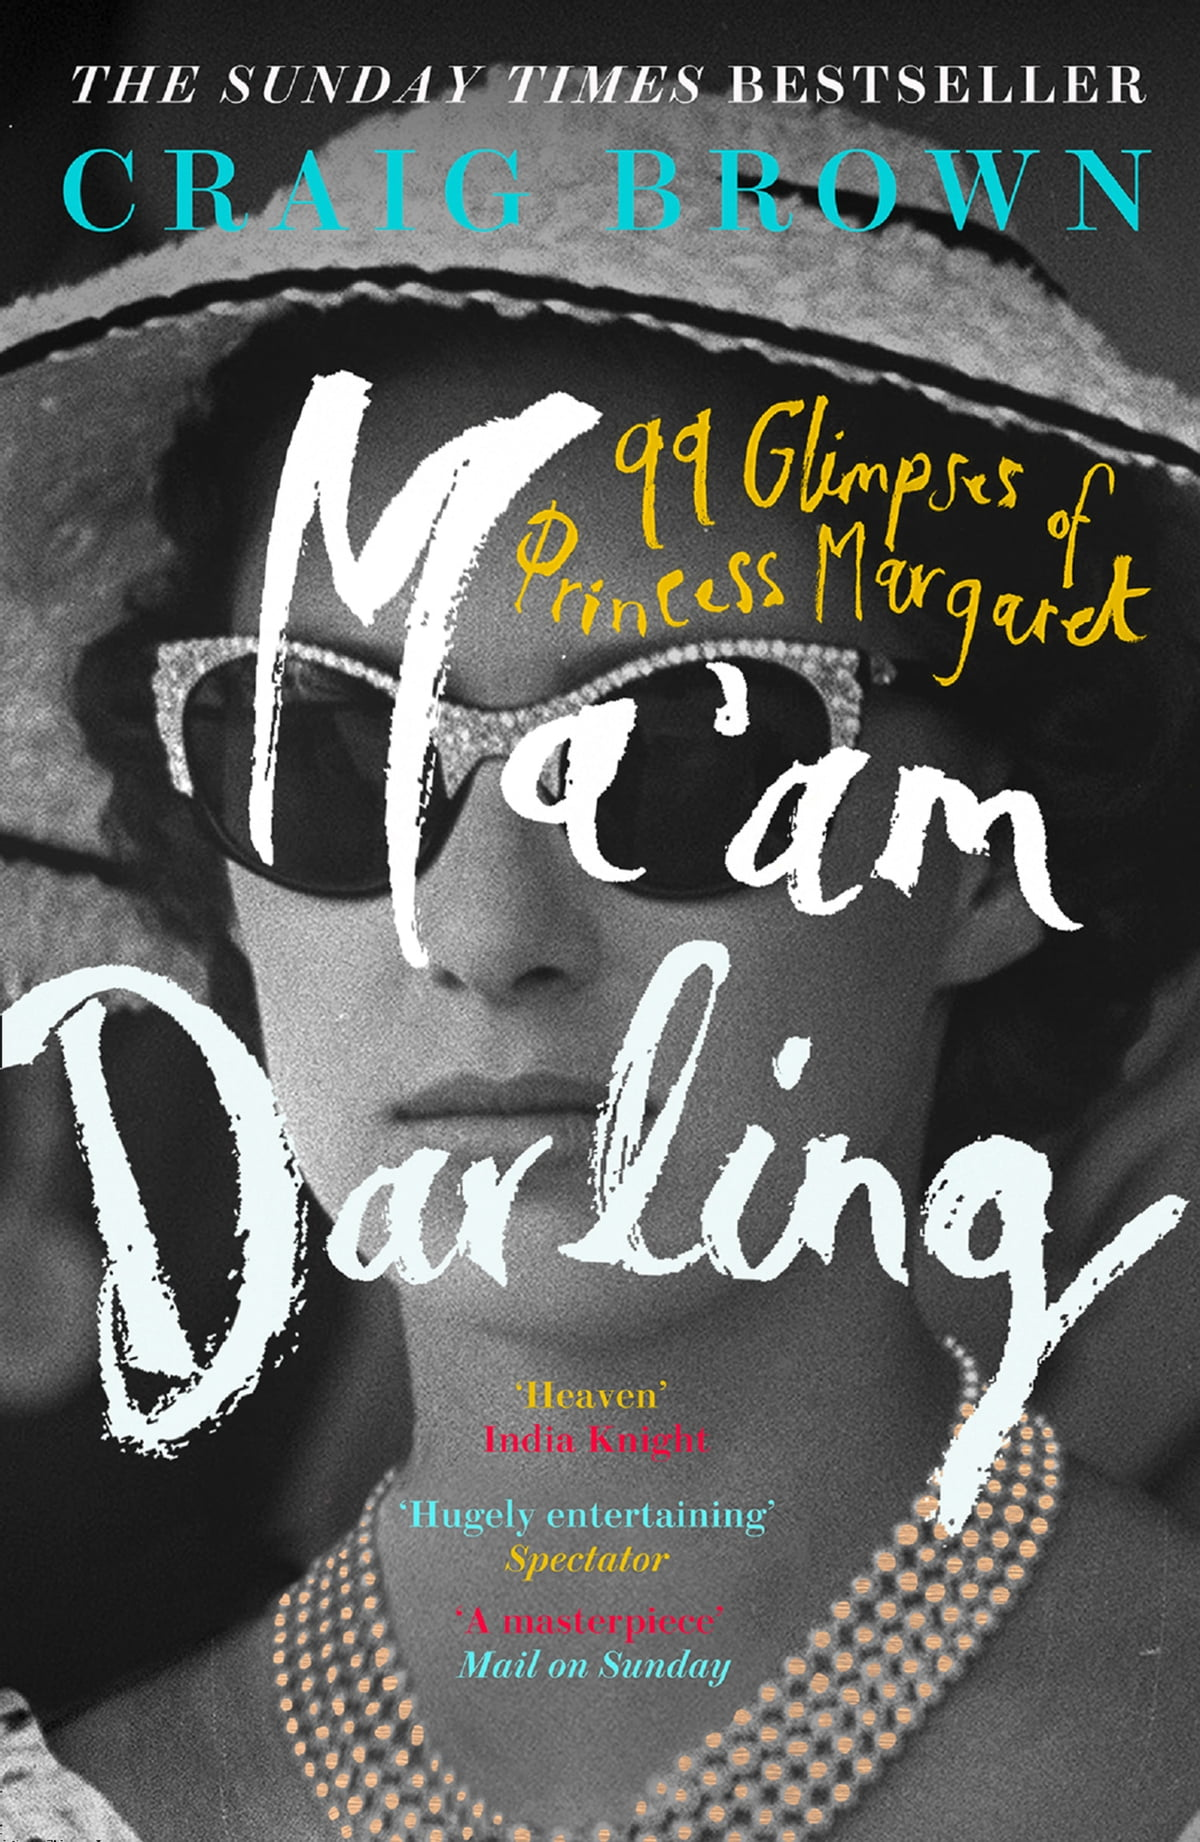 Ma'am Darling: 99 Glimpses of Princess Margaret eBook by Craig Brown -  9780008203627 | Rakuten Kobo